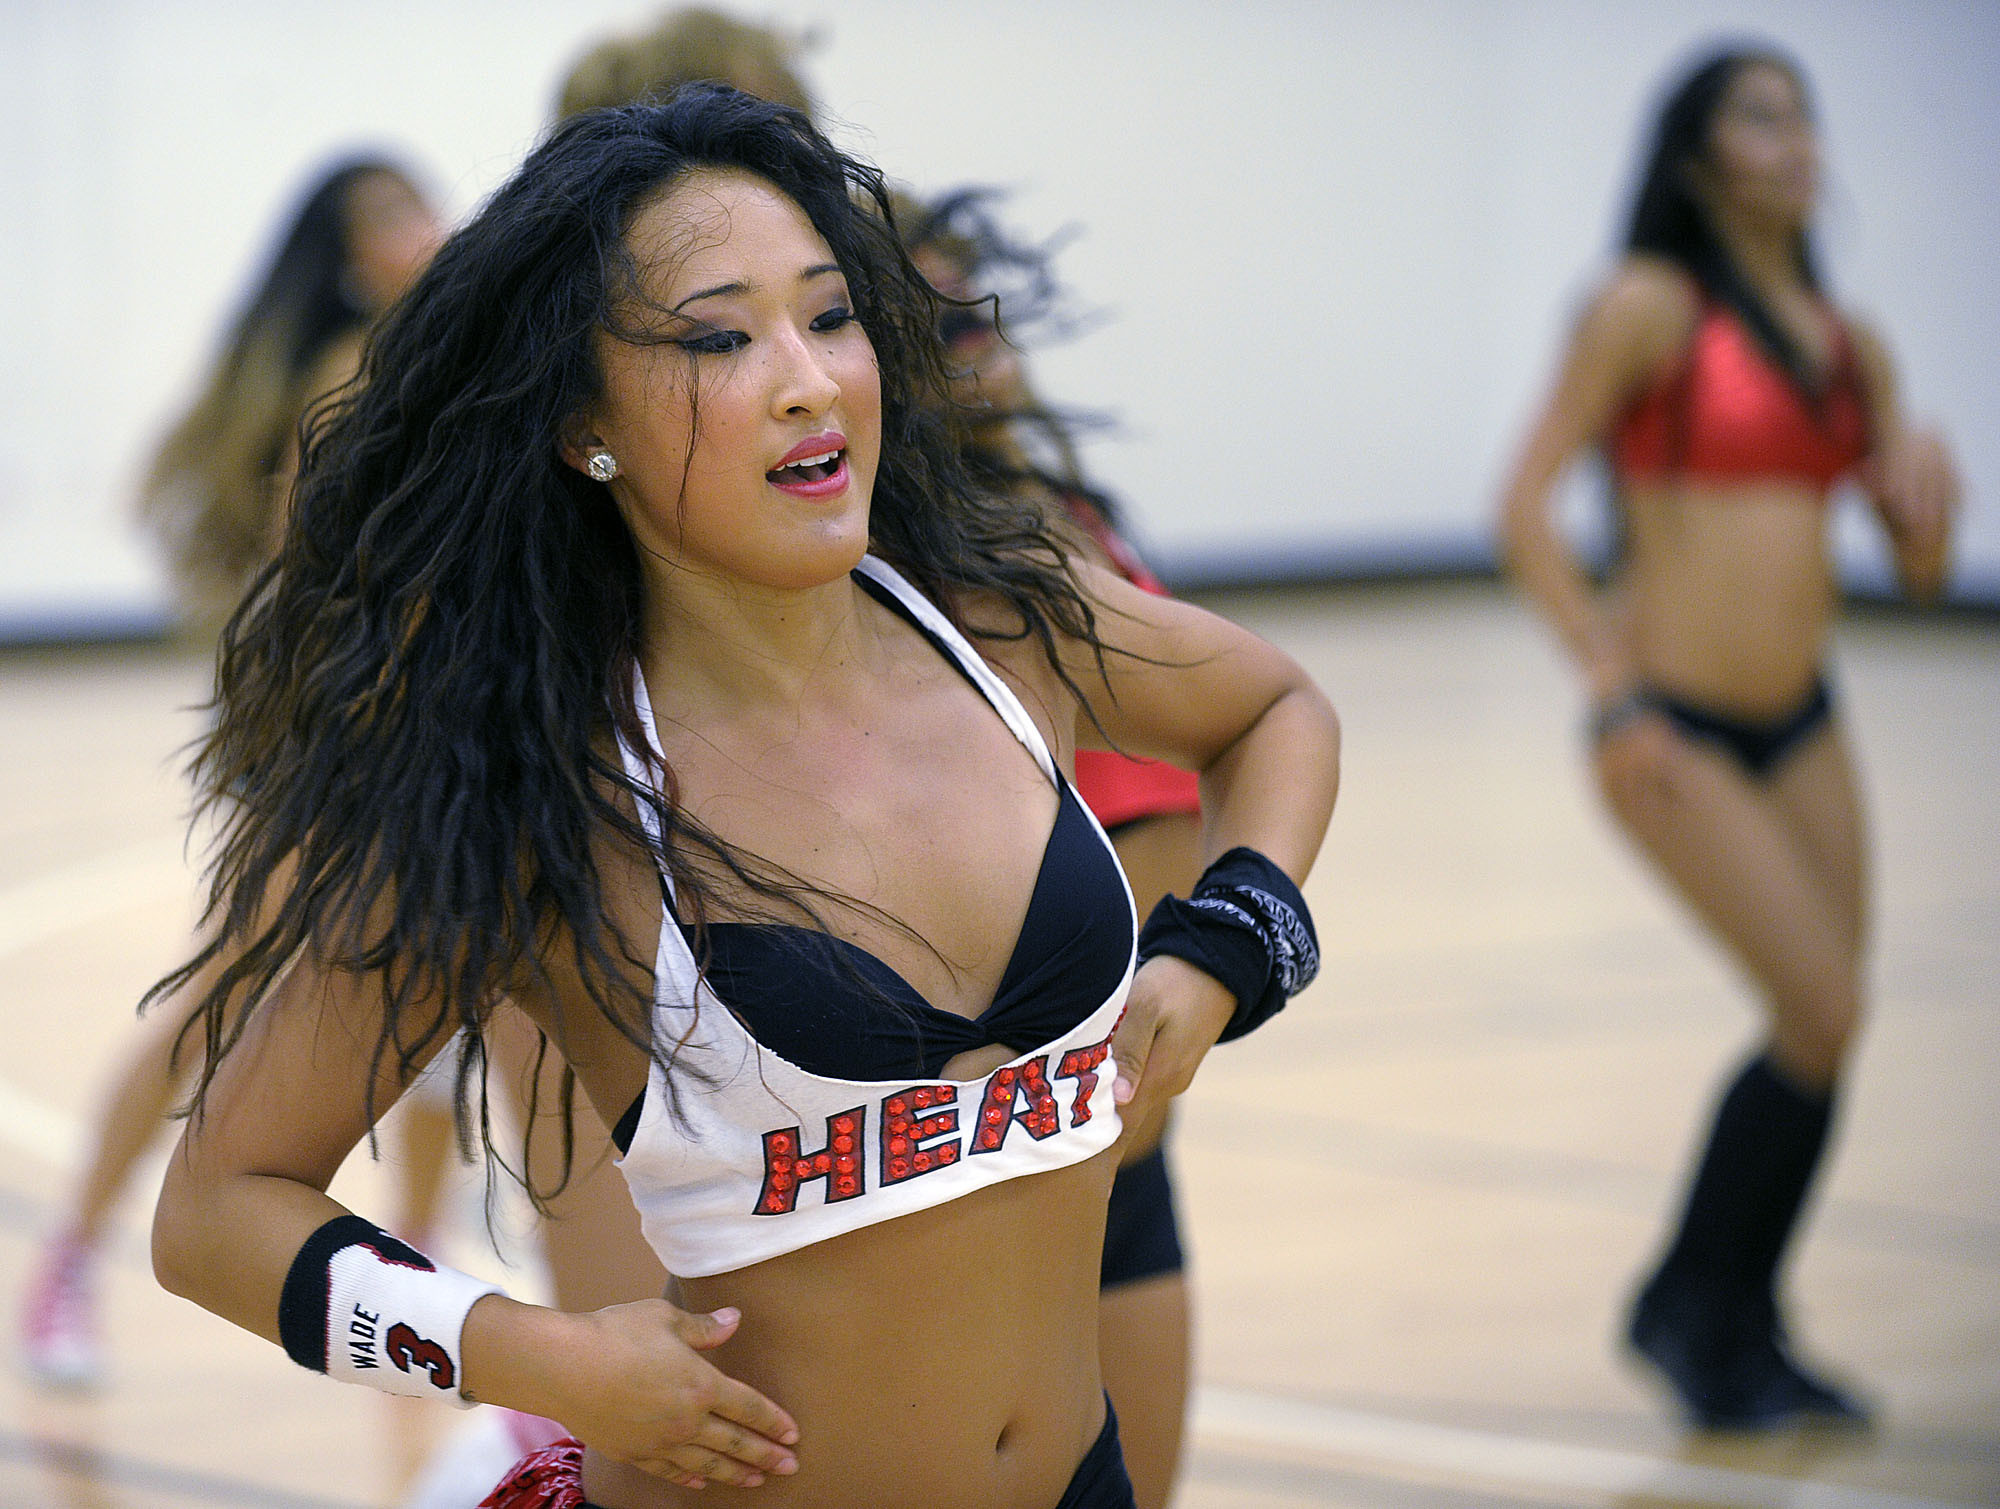 Photos: Miami Heat Dancers in action - Heat cheerleaders